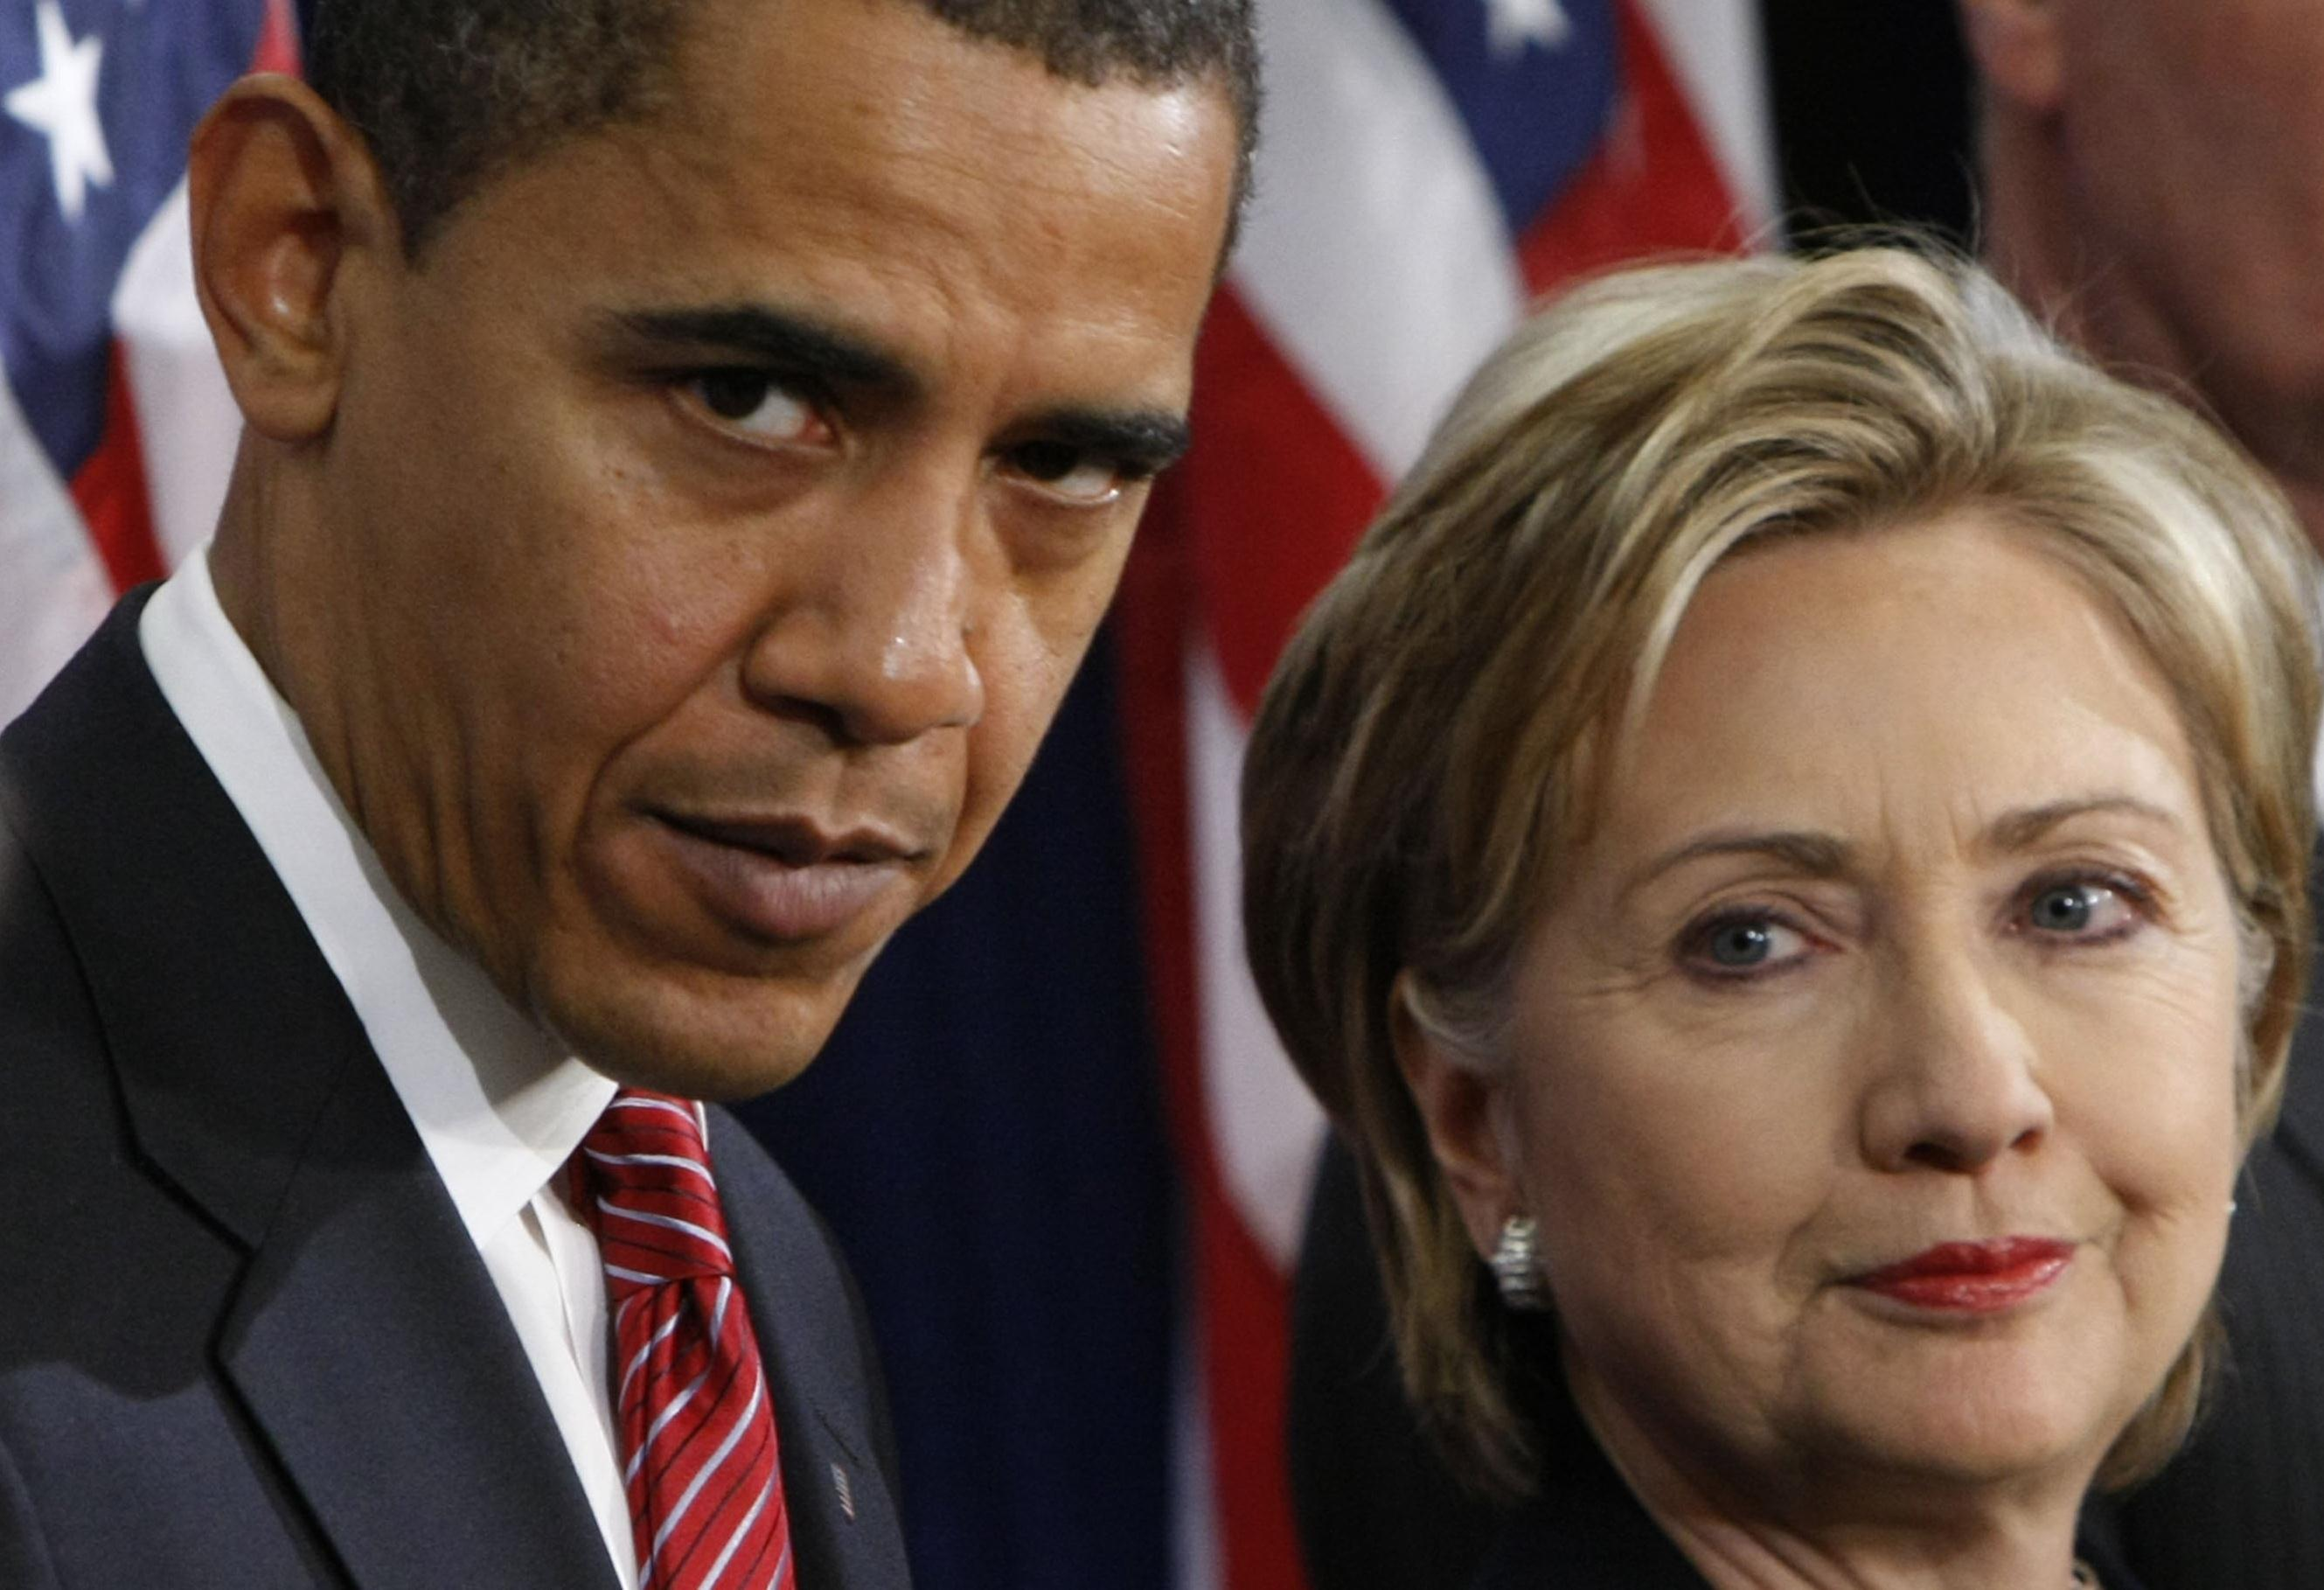 Image: Barack Obama, Hillary Rodham Clinton, Jim Jones